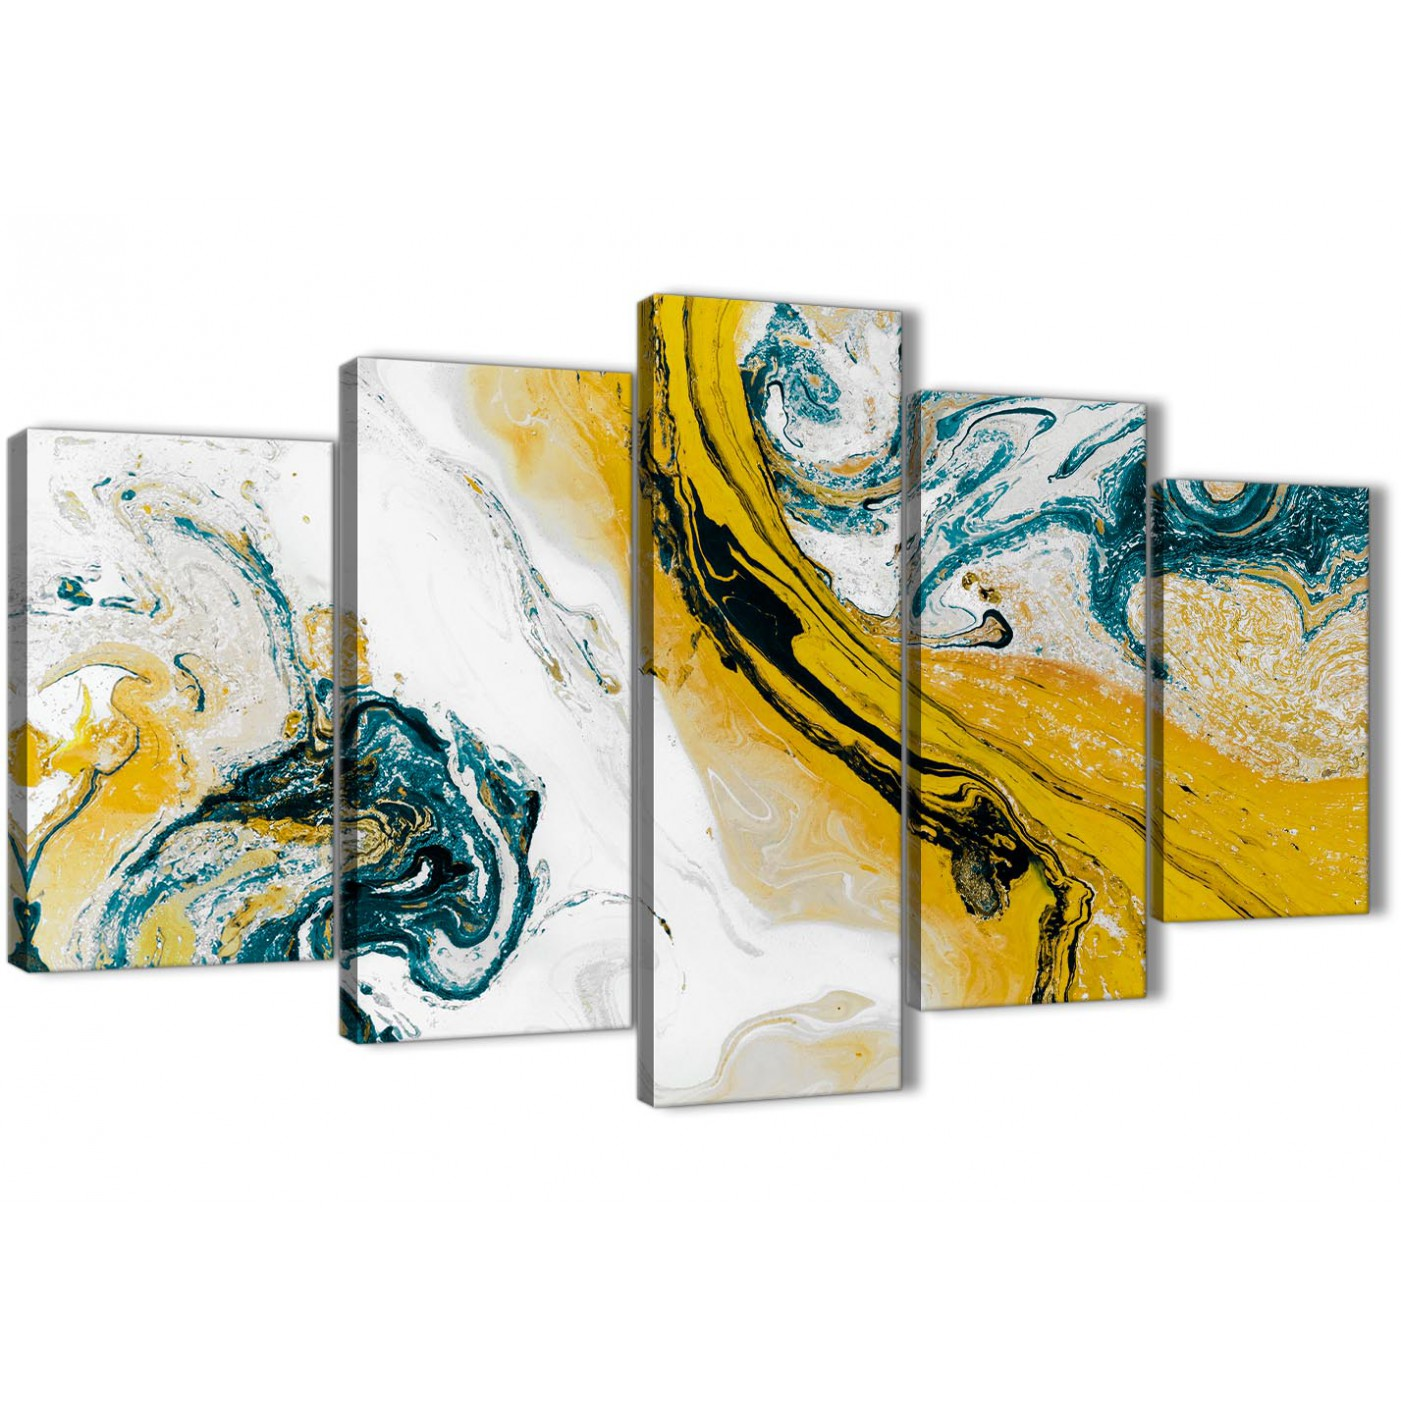 Mustard Yellow and Teal Swirl Bedroom Canvas Pictures ...